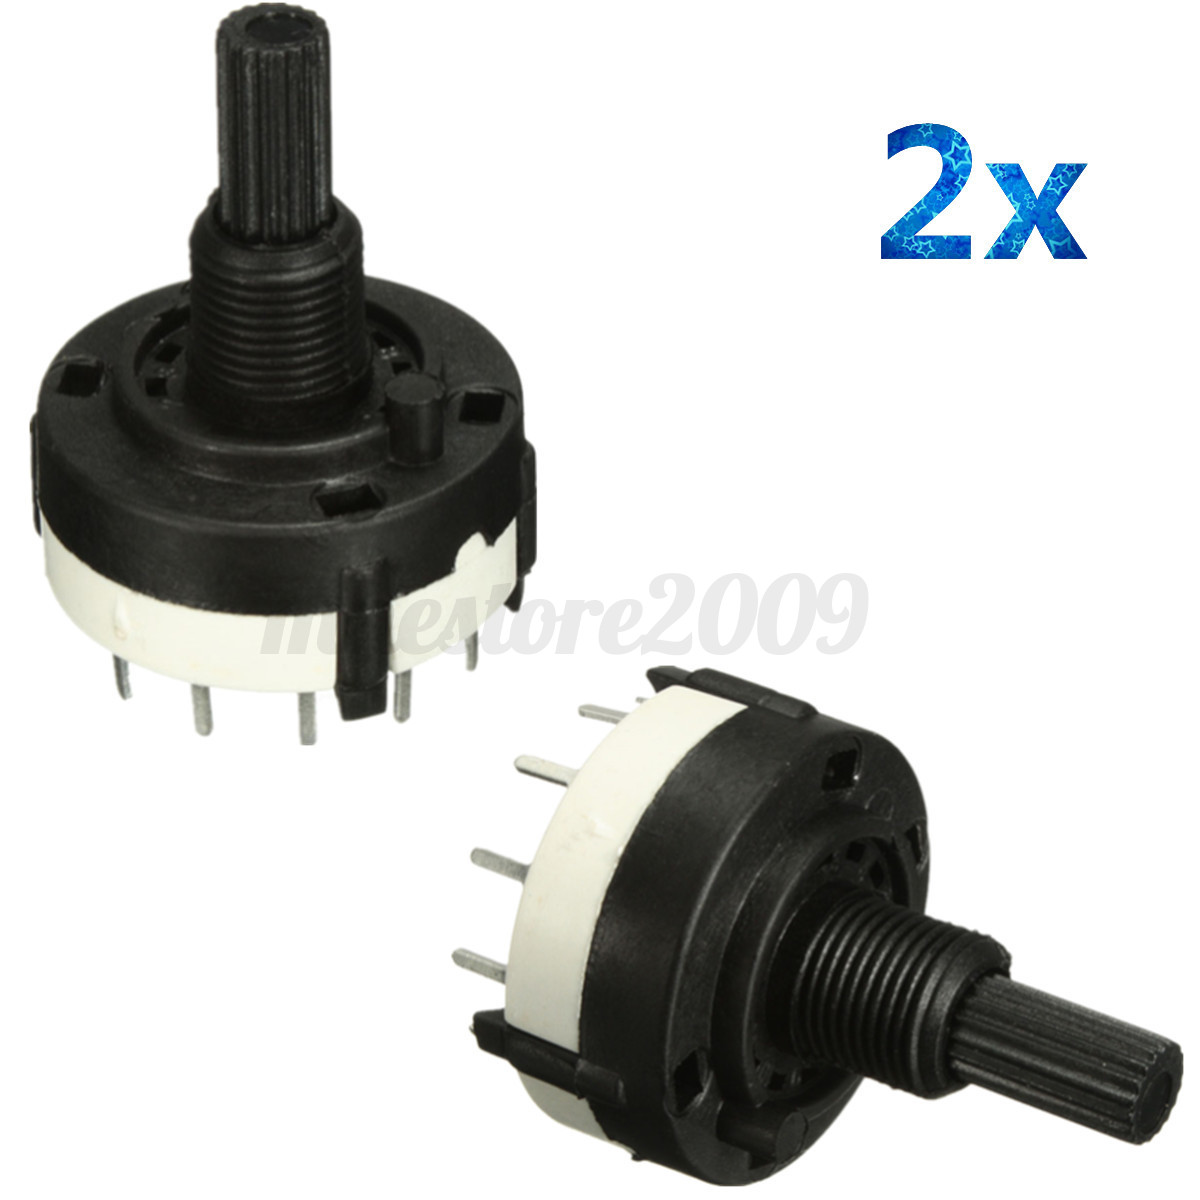 2x 1 Pole 12 Position Panel PCB Wiring Rotary Switch 18 Teeth Shaft Adjustable X